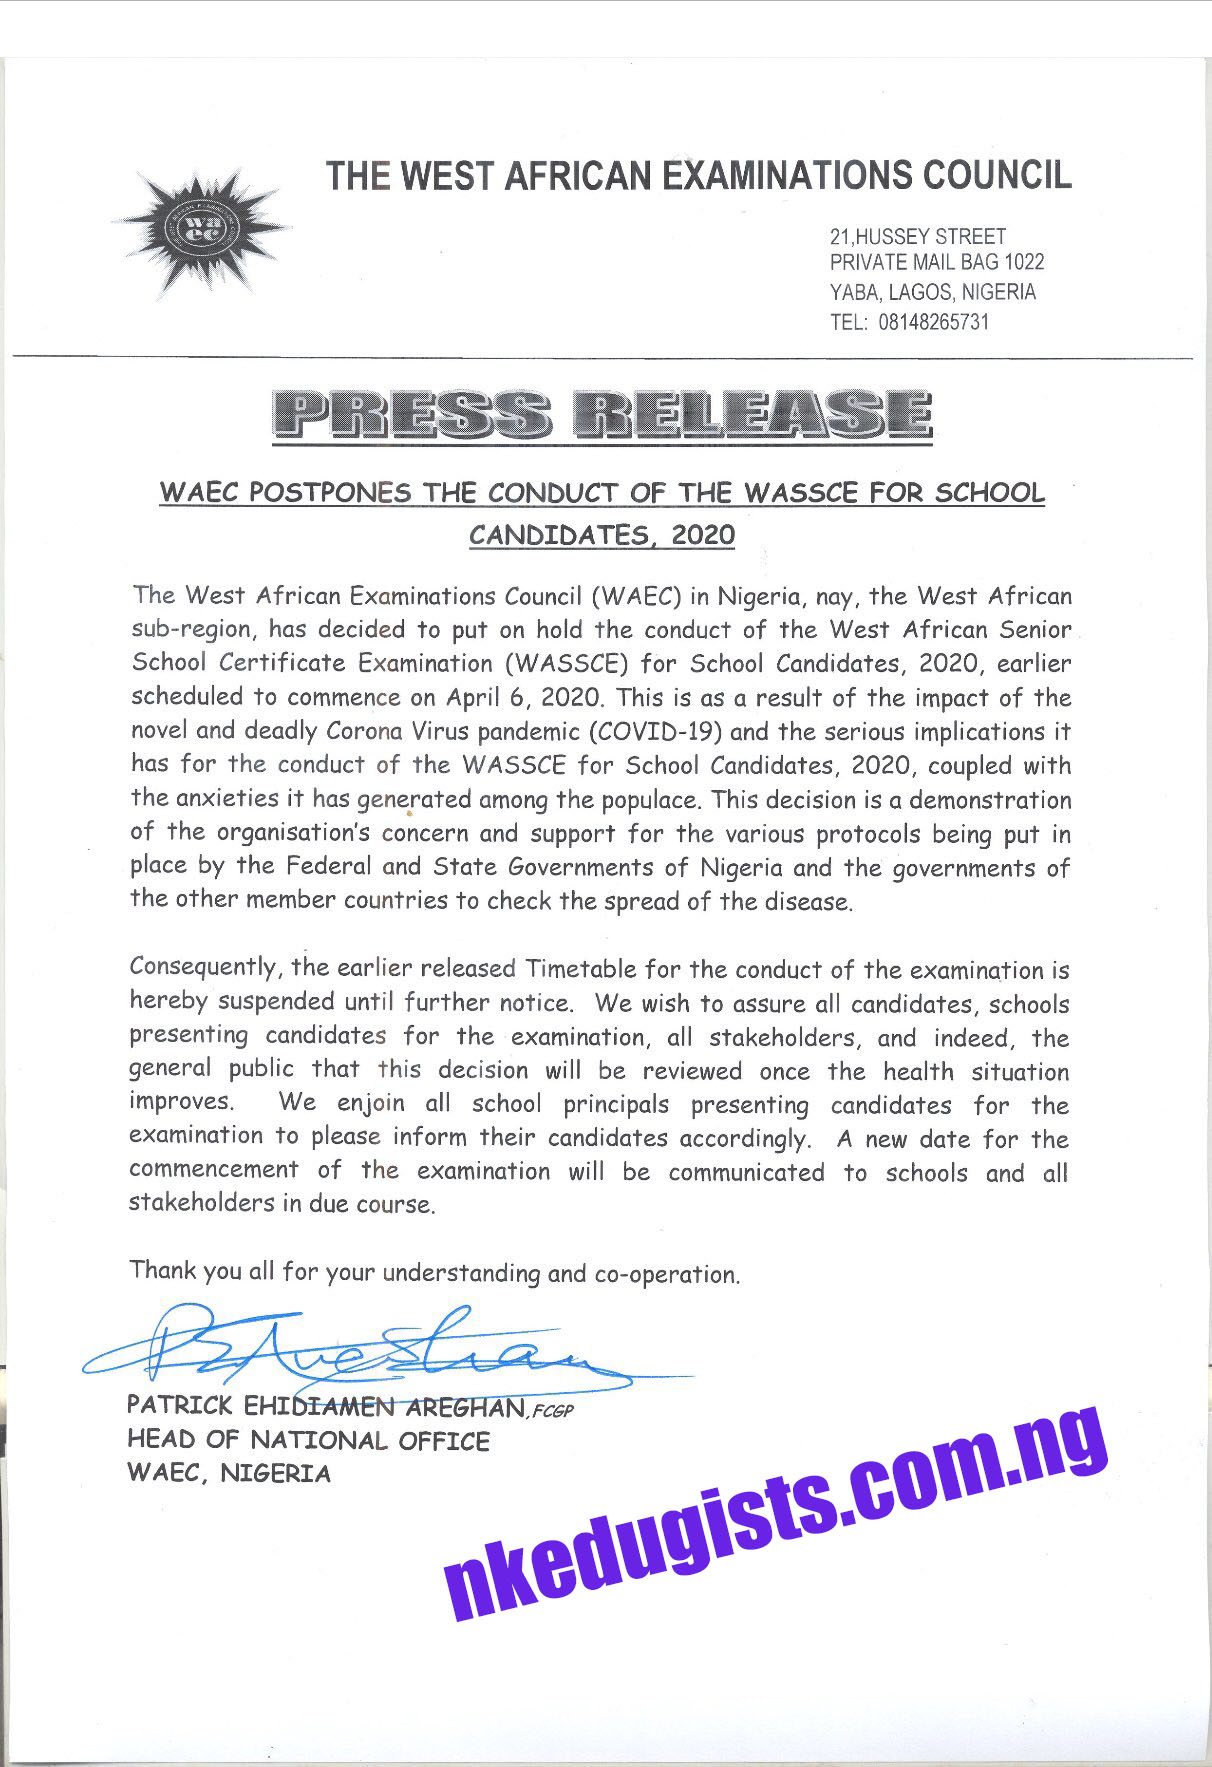 Breaking News on Waec postponement